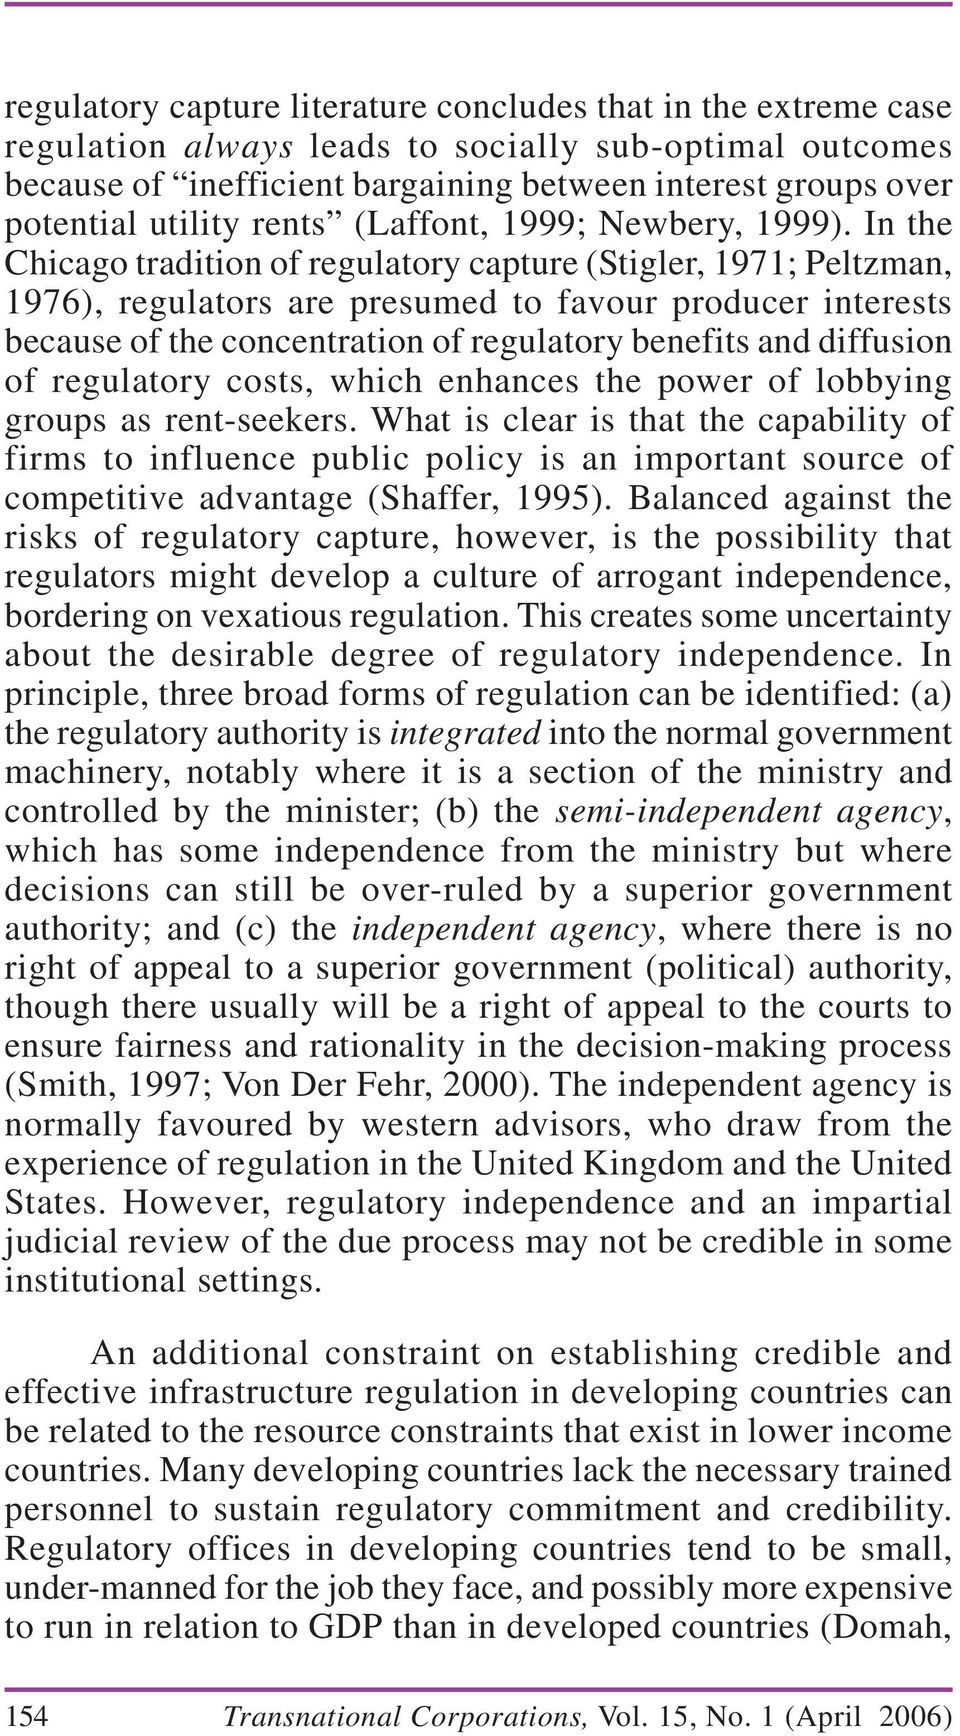 In the Chicago tradition of regulatory capture (Stigler, 1971; Peltzman, 1976), regulators are presumed to favour producer interests because of the concentration of regulatory benefits and diffusion